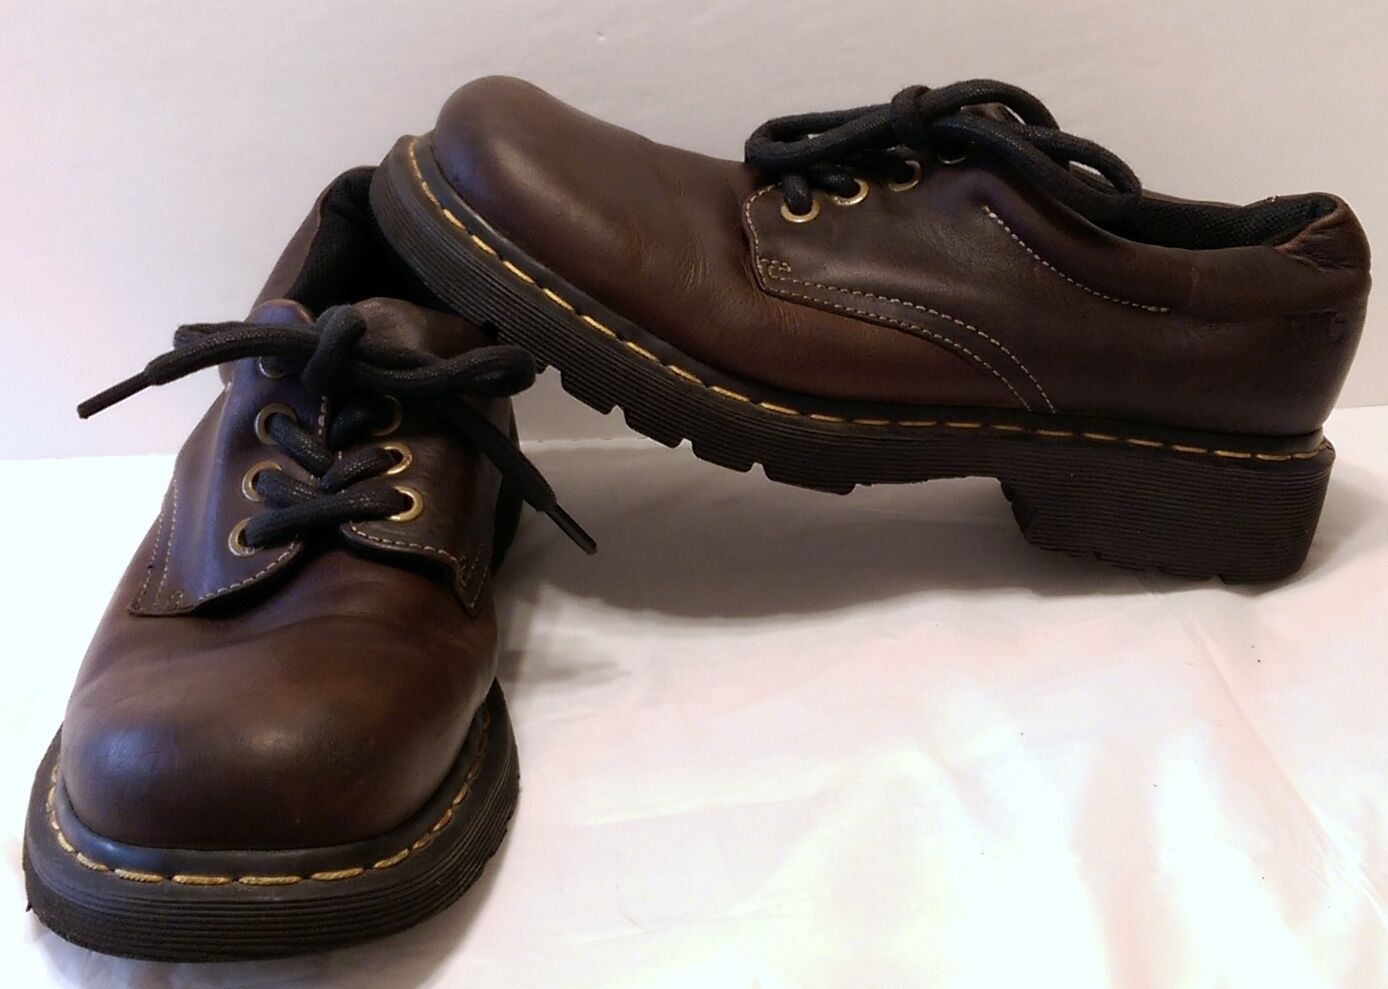 Dr. Martens Doc Martens Brown Leather shoes Size 7 US Oxfords DMs Casual Lace Up